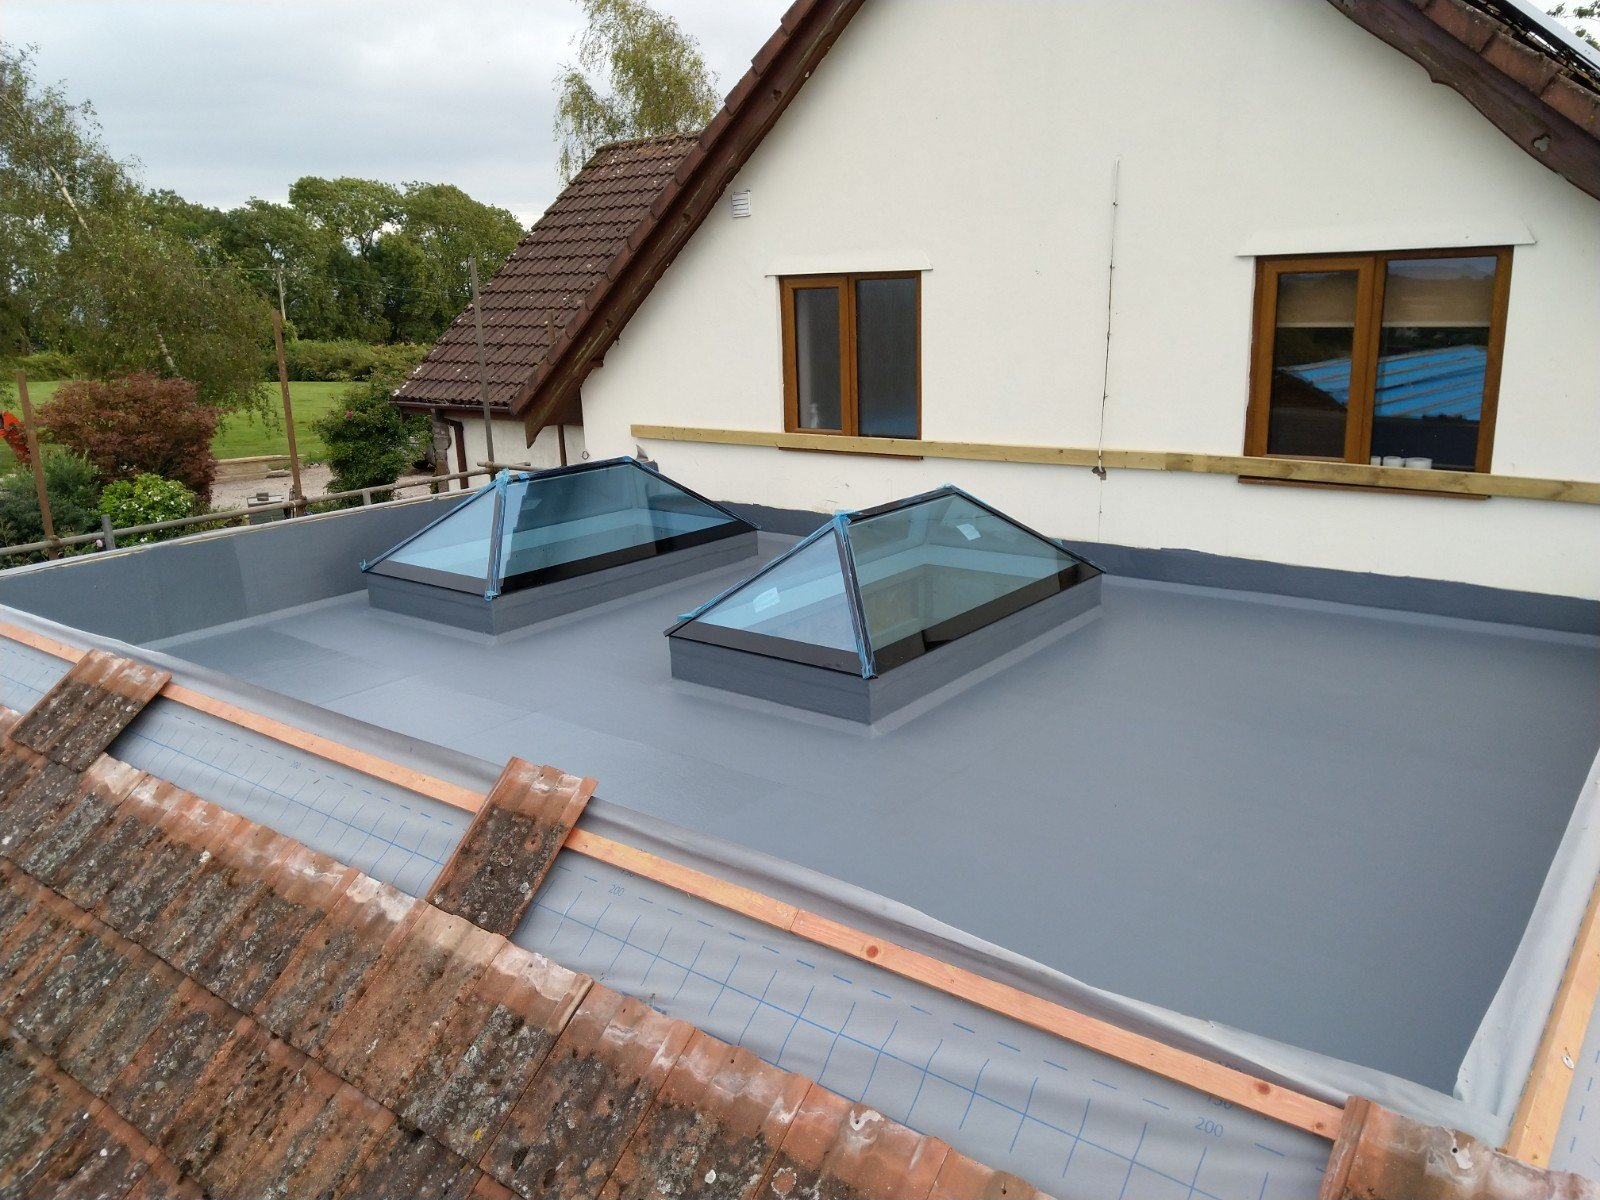 Fibreglass flat roof in Chepstow with 2 lantern skylights.